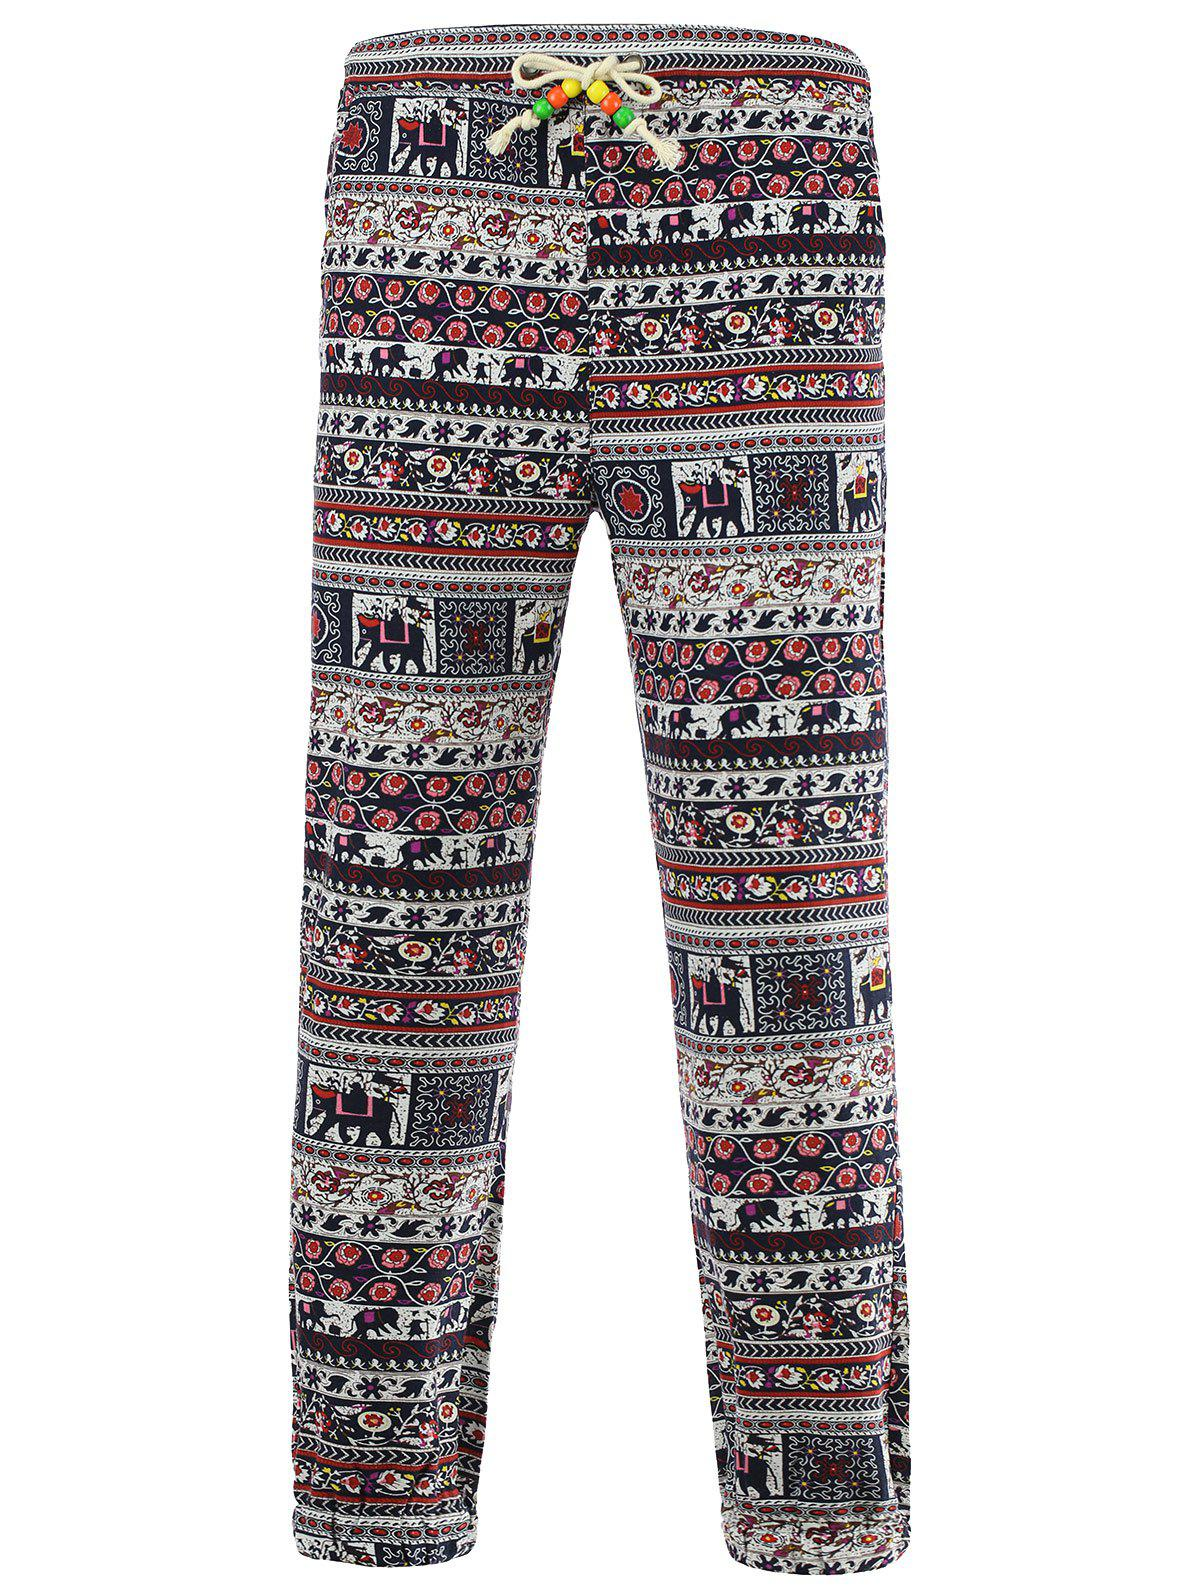 Tiny Floral and Elephant Print Spliced Lace-Up Beam Feet Cotton+Linen Men's Pants - 4XL COLORMIX